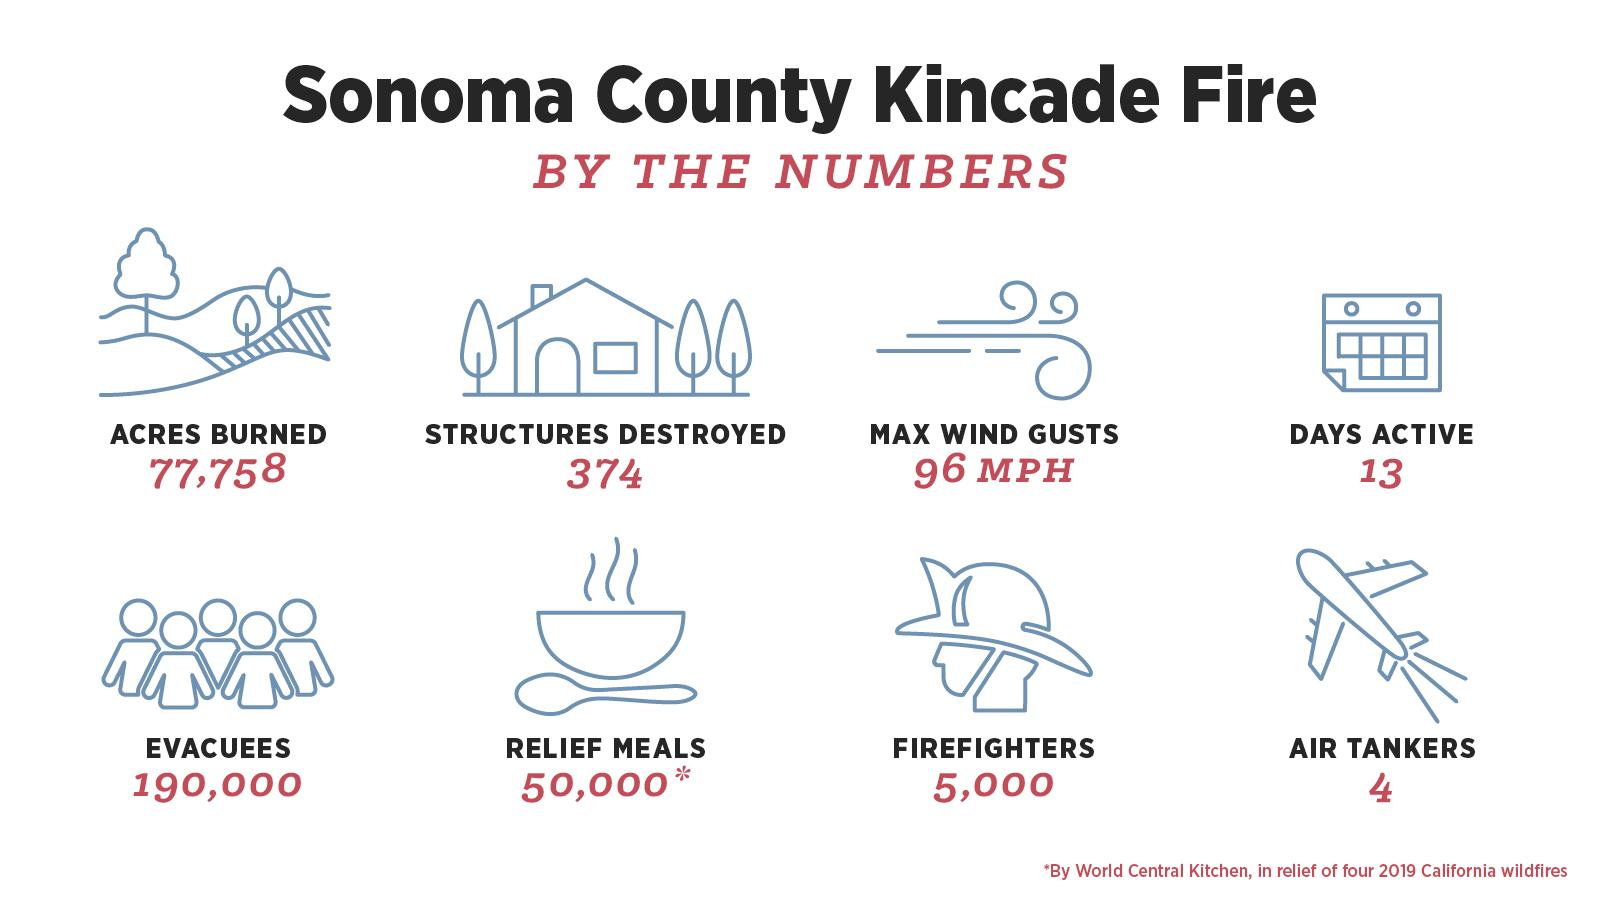 Kincade Fire by the numbers infographic